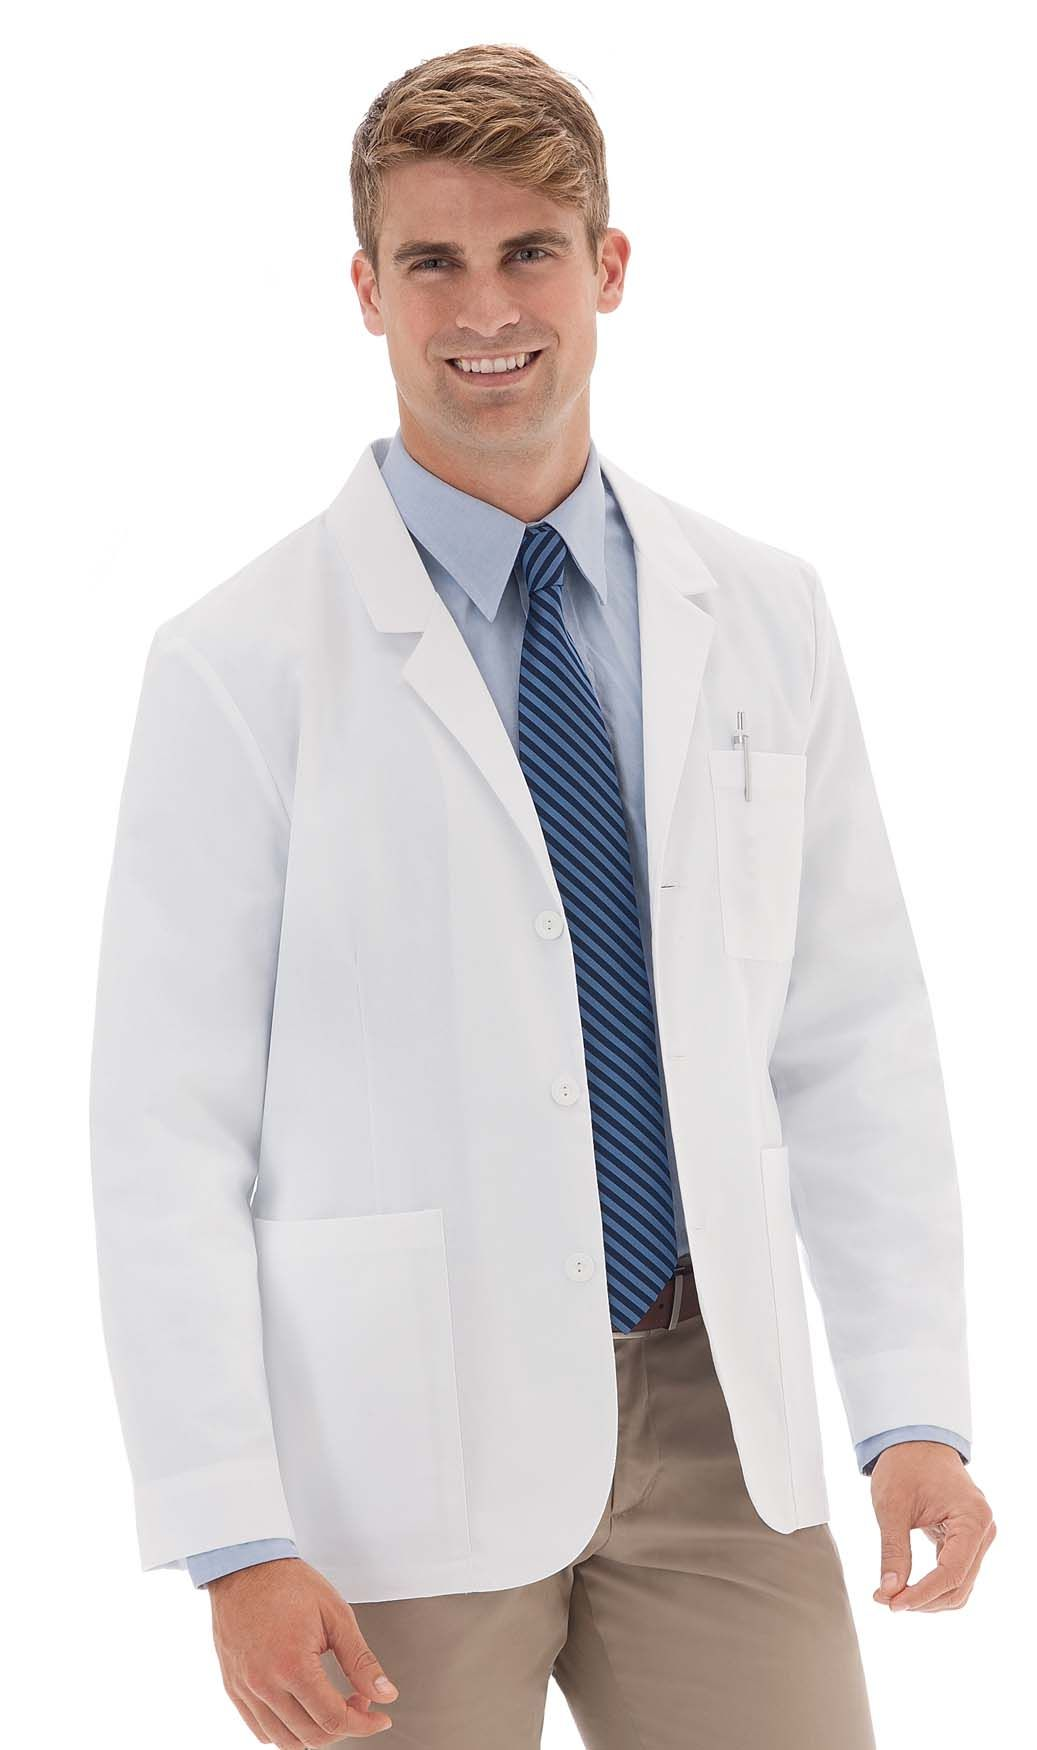 Meta 739 Consultation Lab Coat